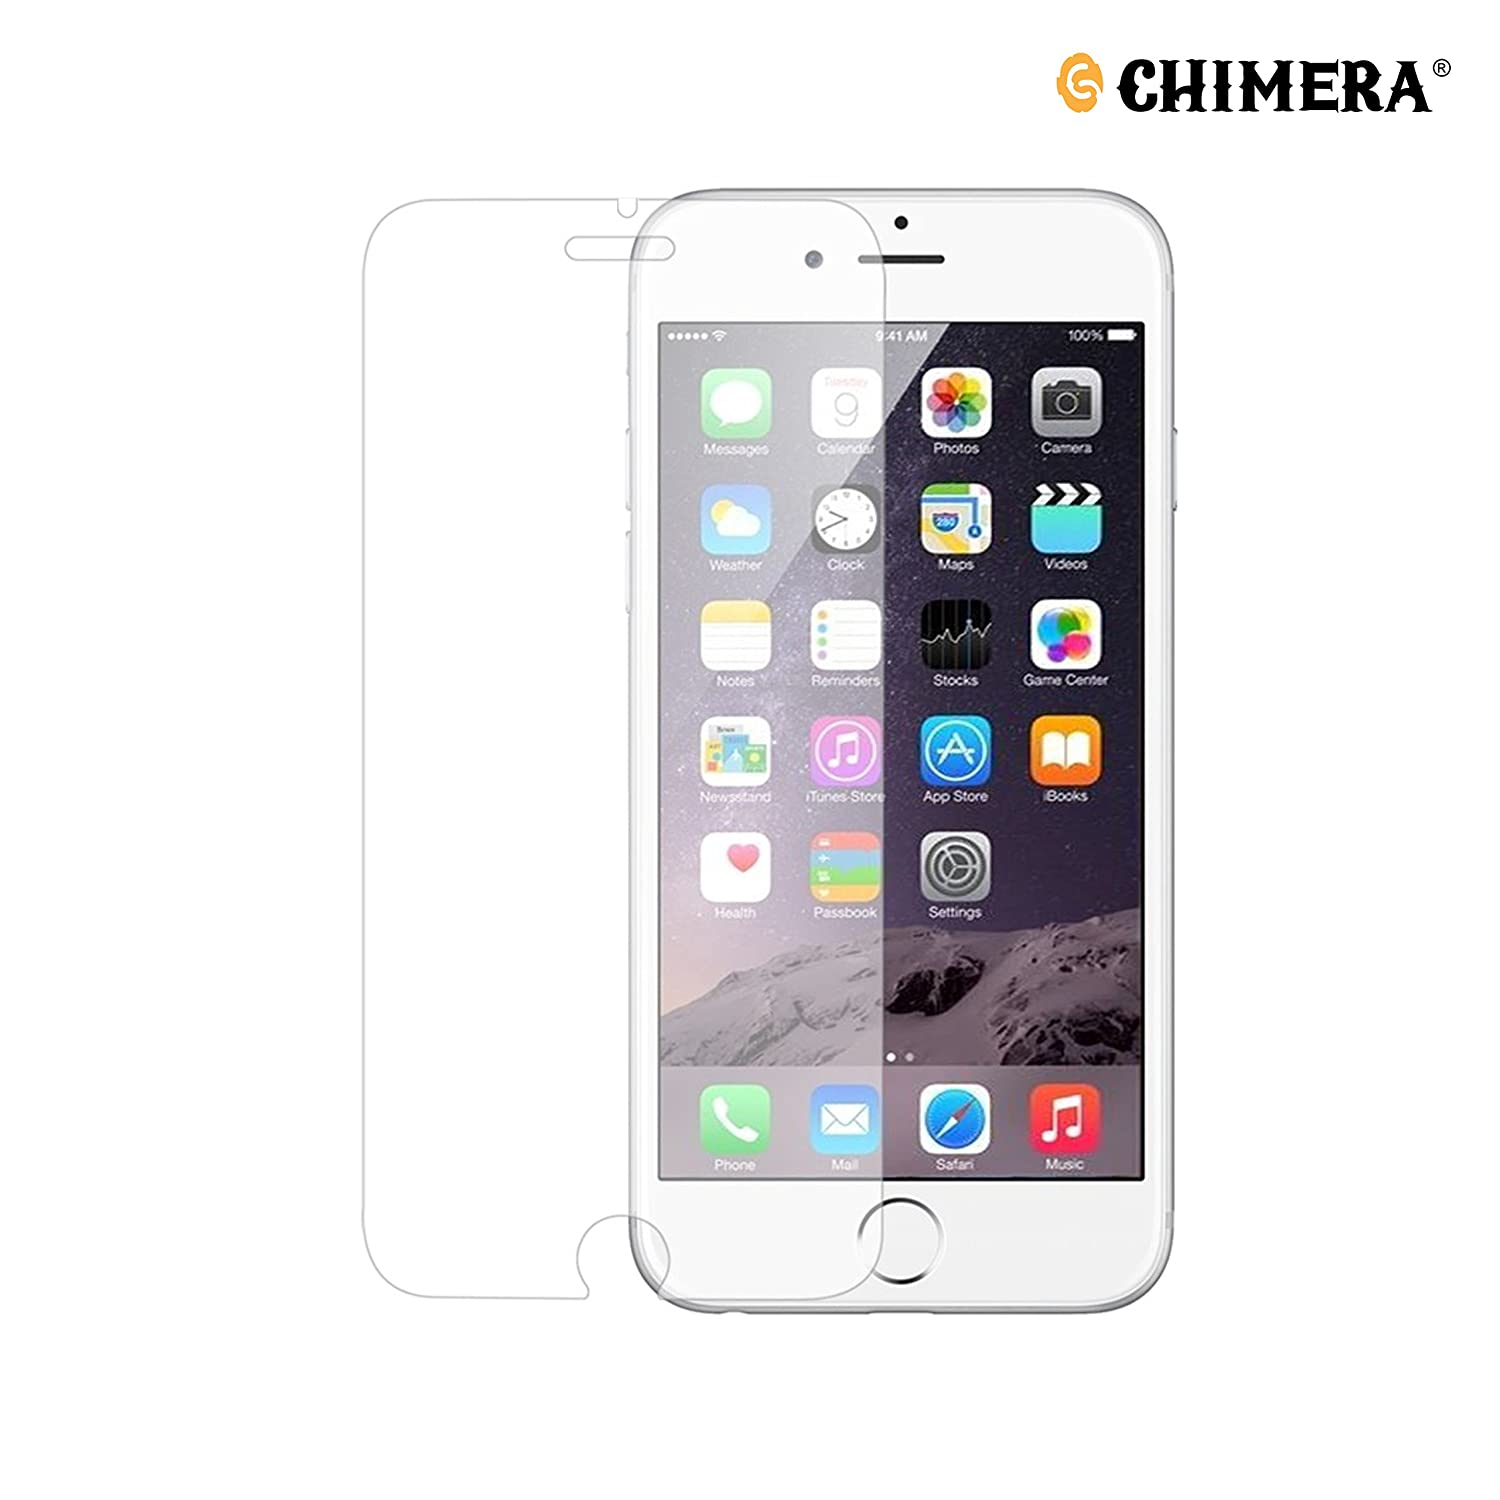 Chimera Matte Finish Tempered Glass Screen Protector: Amazon